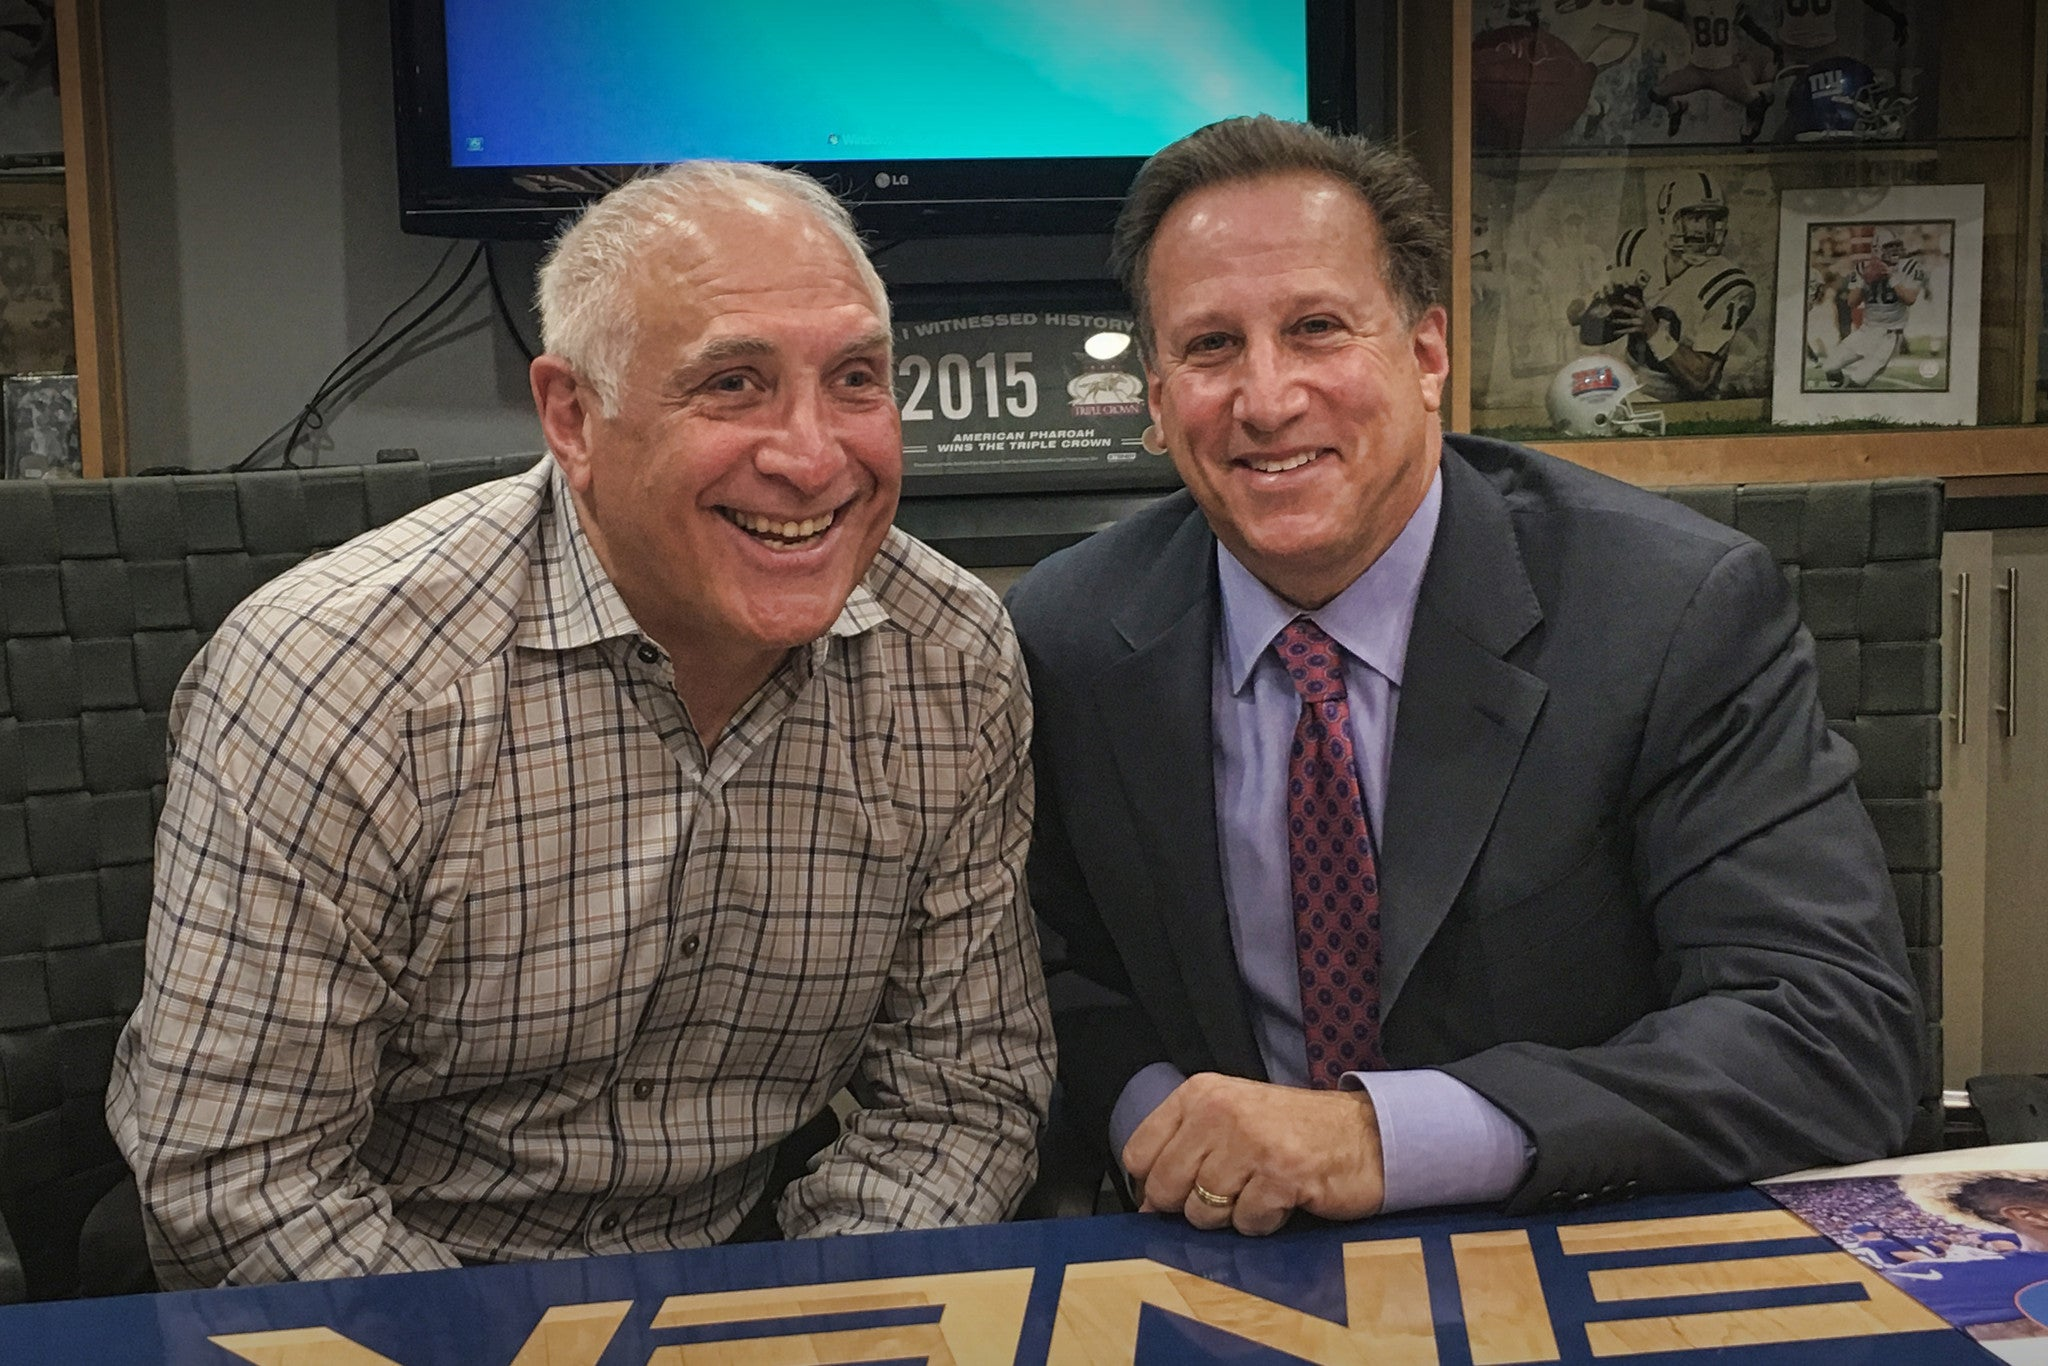 Video: Bruce Beck Joins Brandon Steiner to Talk About His Passion for Sports Broadcasting